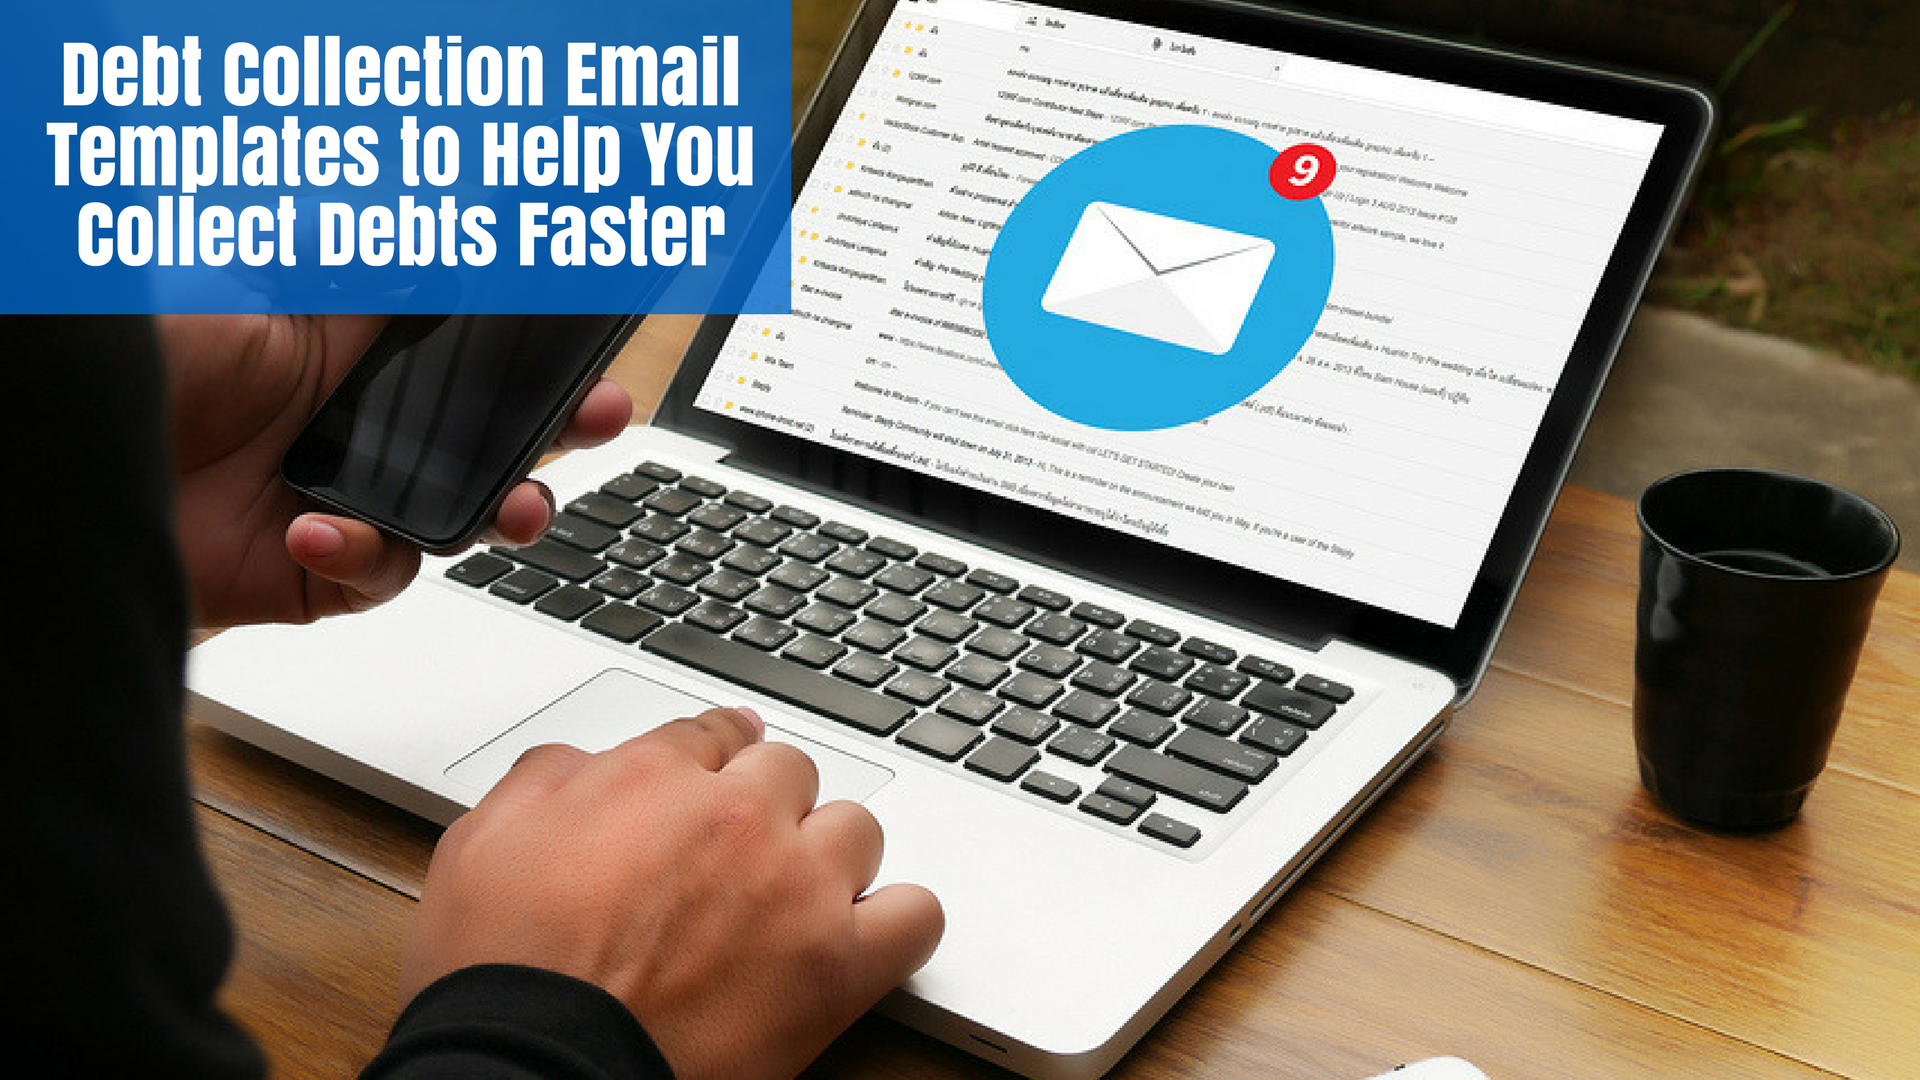 Debt Collection Email Templates To Help You Collect Debts Faster